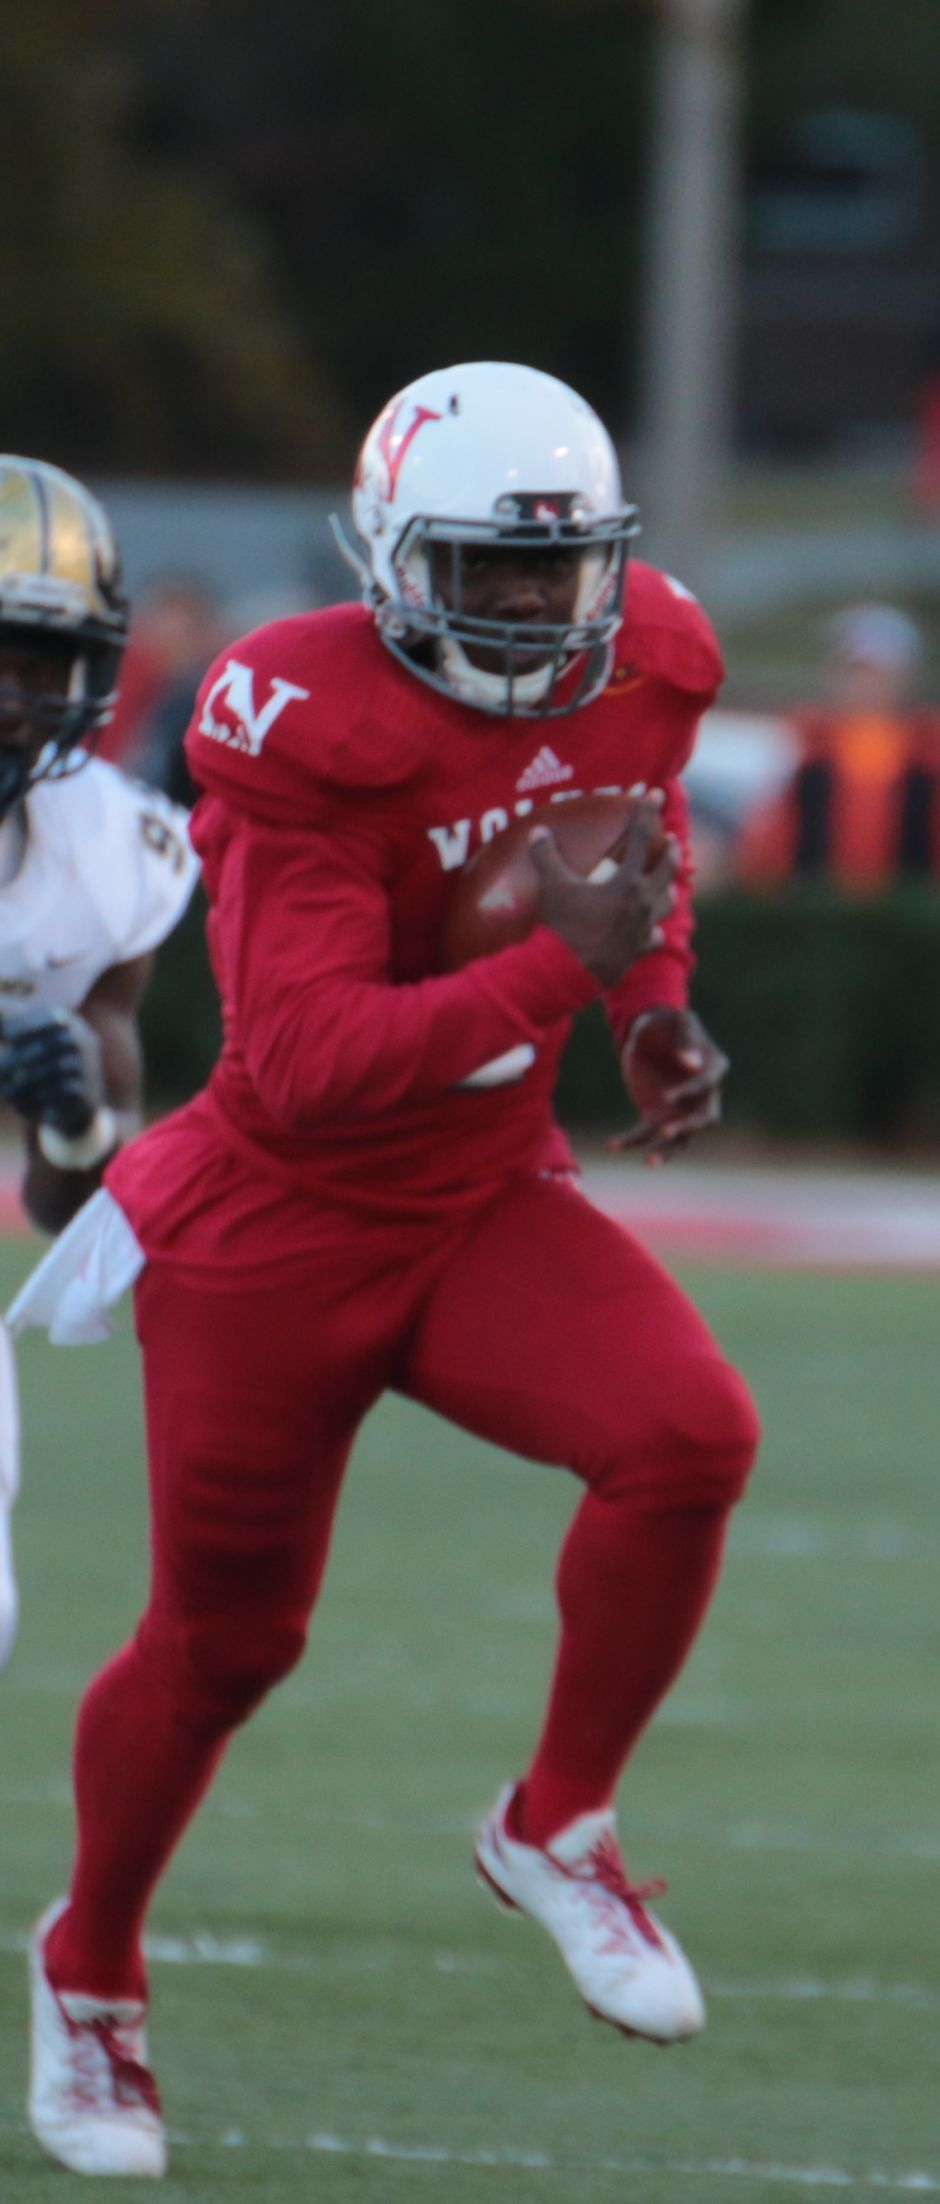 Former south florence star leads newberry college to outright sac crown